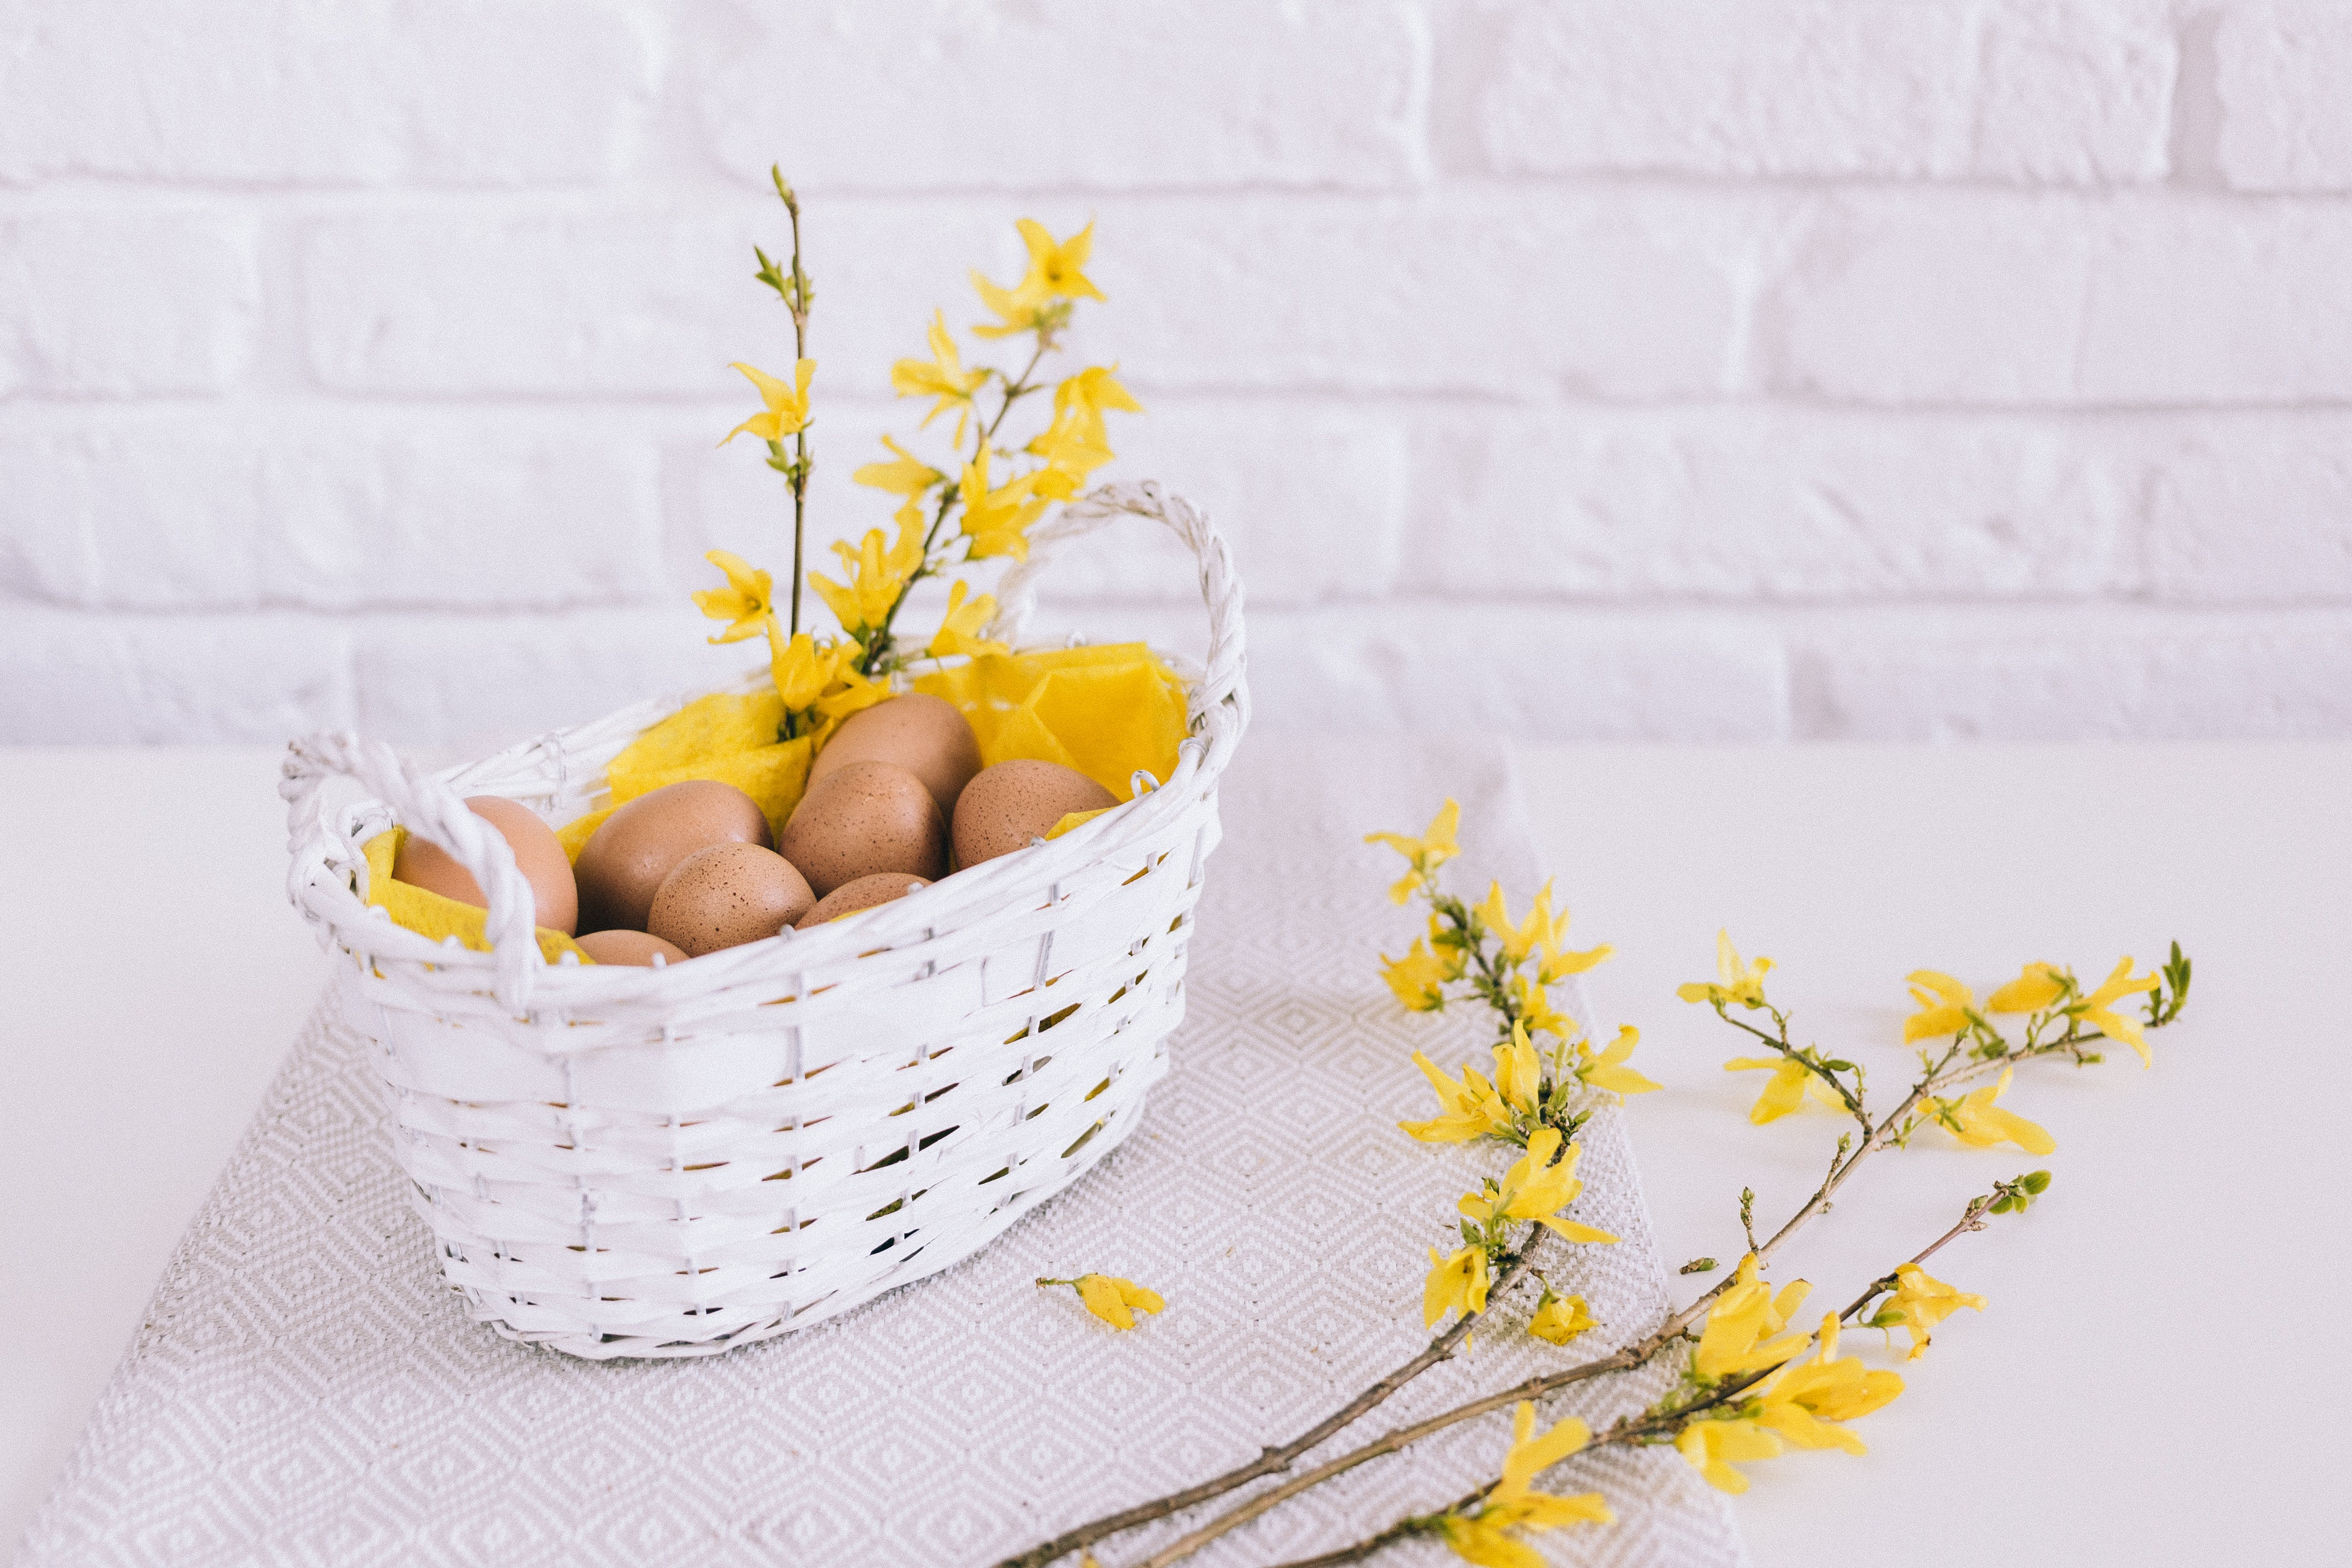 Free stock photo of flowers, table, eggs, wooden